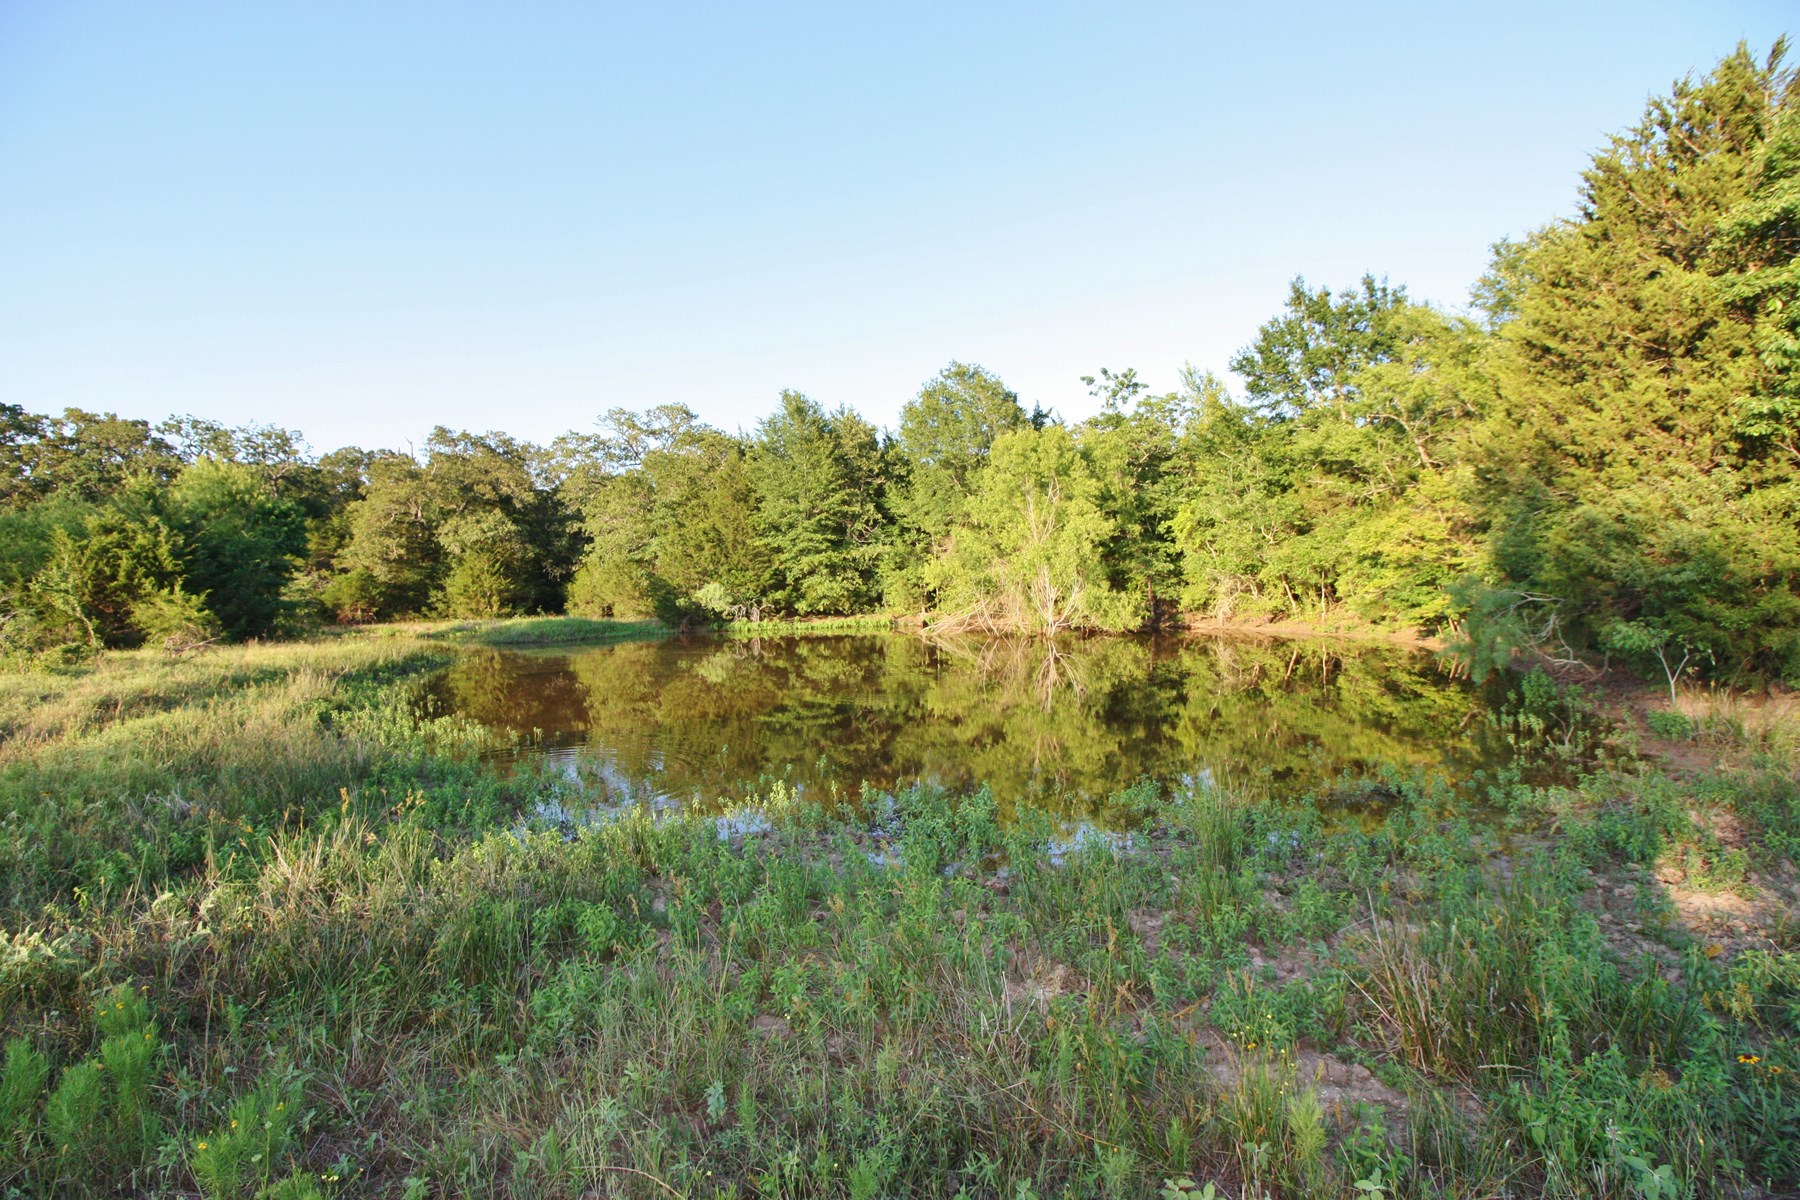 Land For Sale in Limestone County, TX